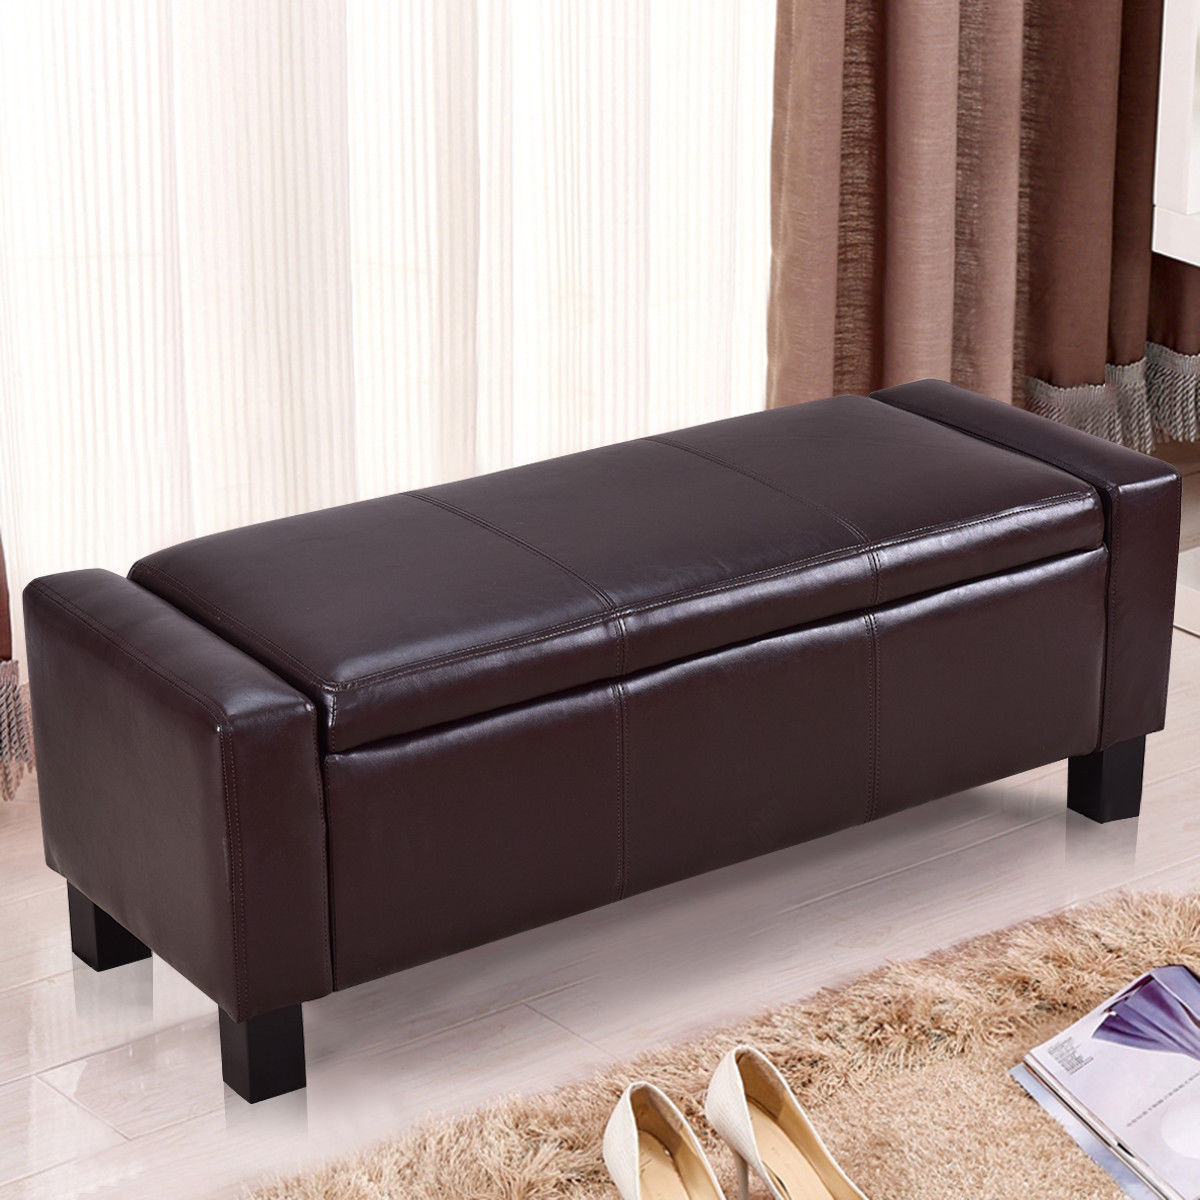 """Gymax Brown 43"""" PU Leather Ottoman Bed Bench Storage Footstool Organizer Furniture by Gymax"""